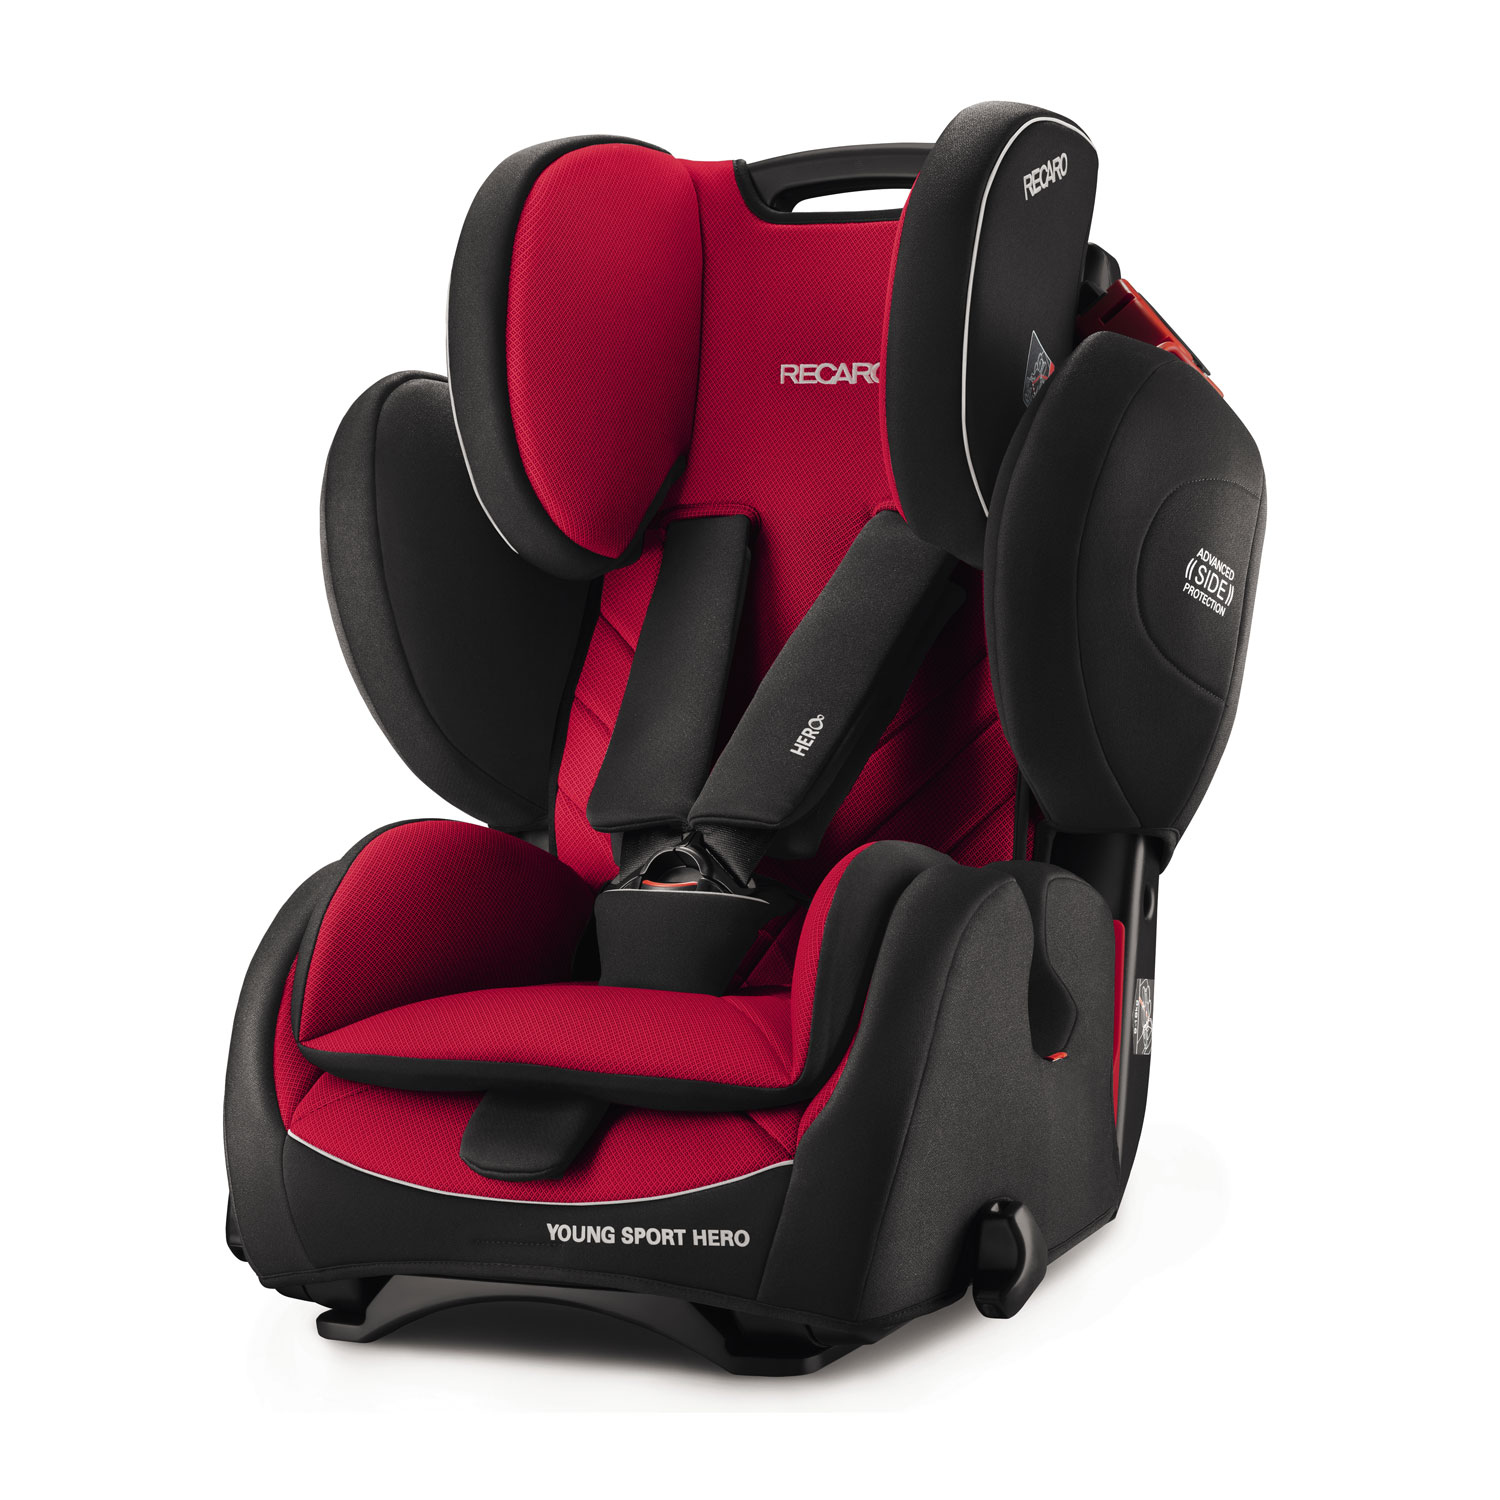 recaro germany young sport hero racing red child seat 9 36 kg 19 79 lbs racing red car. Black Bedroom Furniture Sets. Home Design Ideas